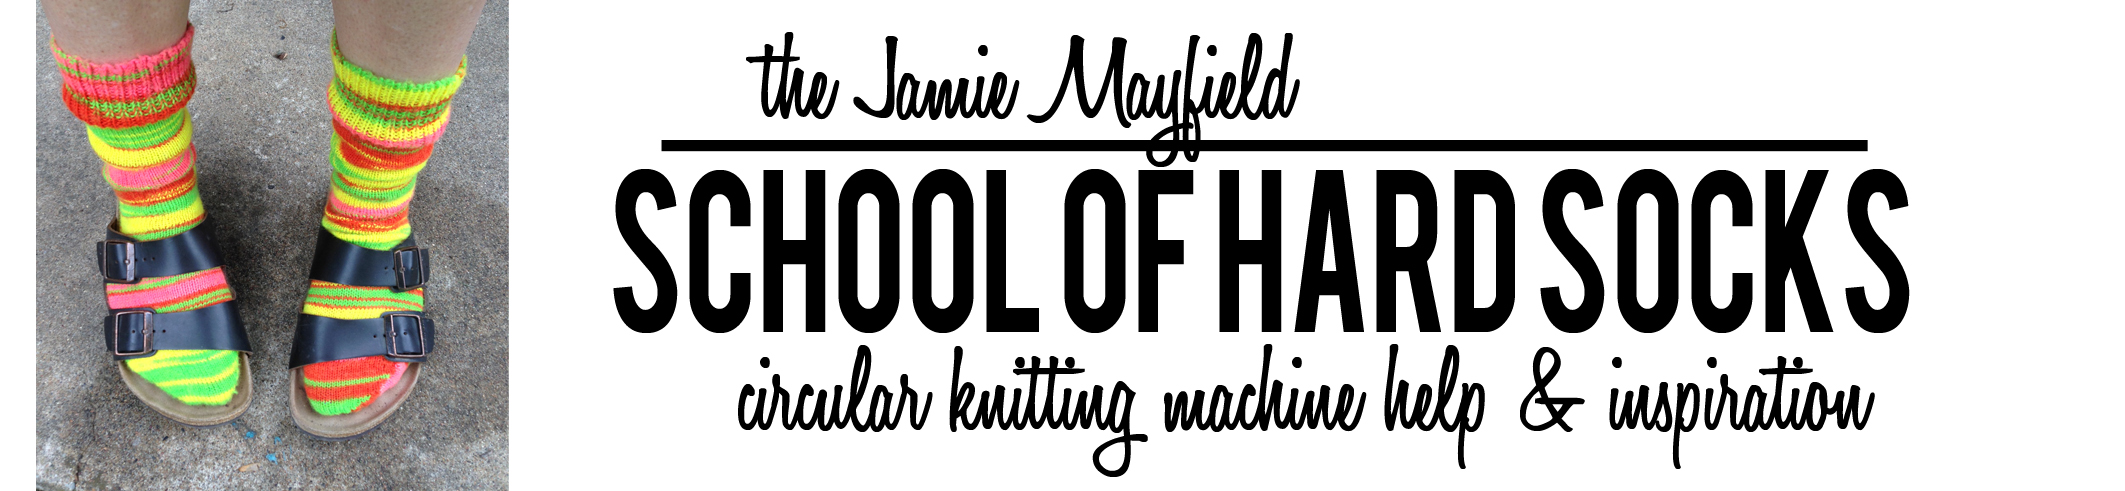 jamie mayfield's school of hard socks